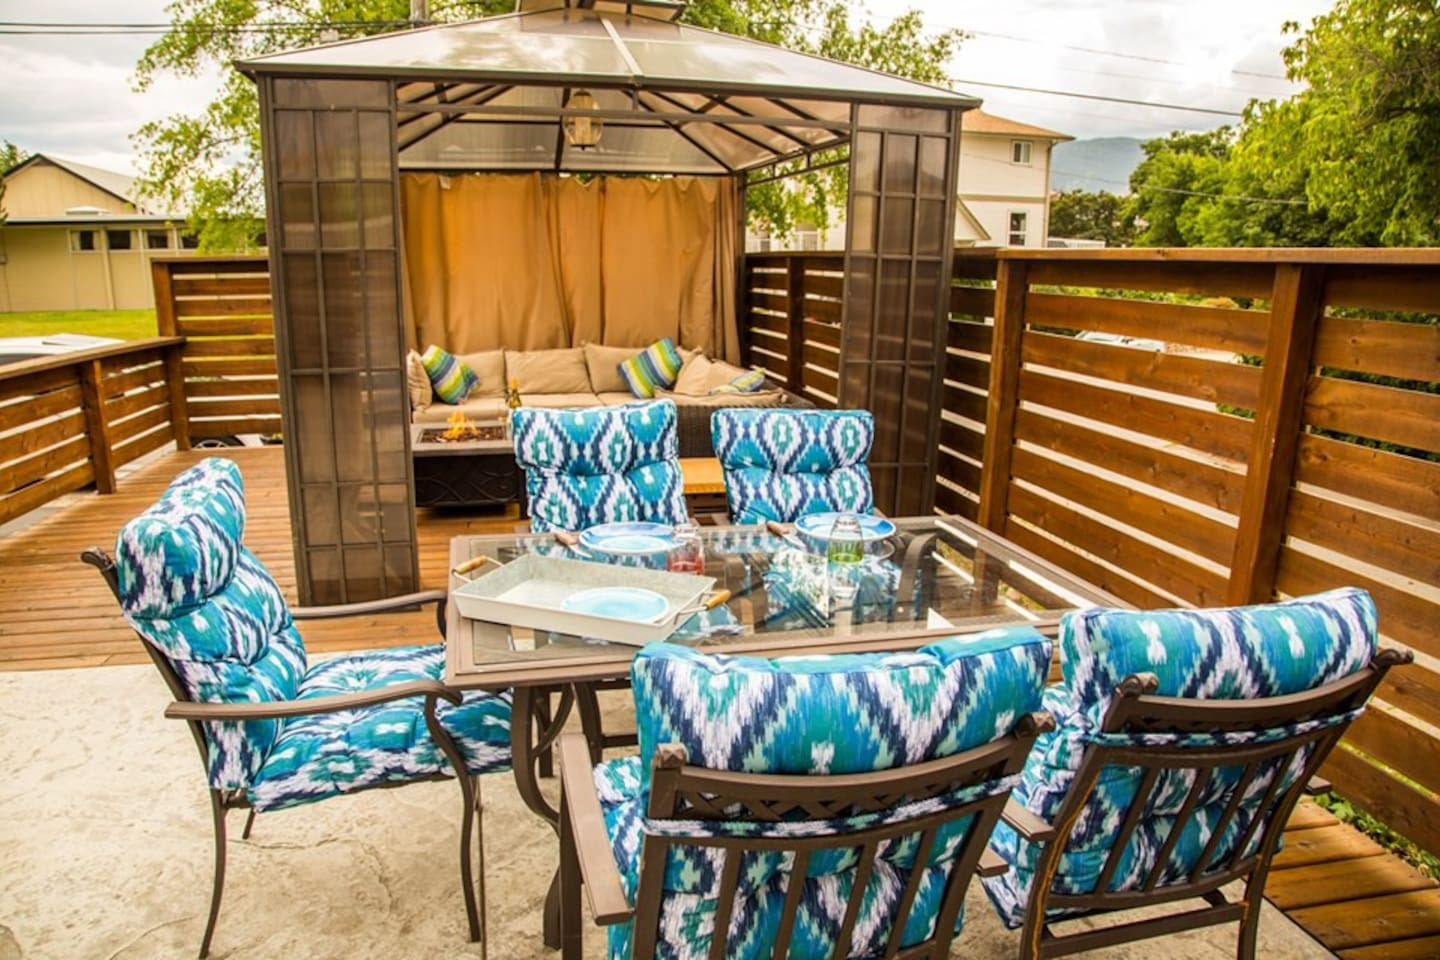 Large outdoor dining and seating area.  BBQ is ready for anything you like to grill up!  Sit here and enjoy the Okanagan lifestyle relaxing after a full day of beaches, trails or wine touring.